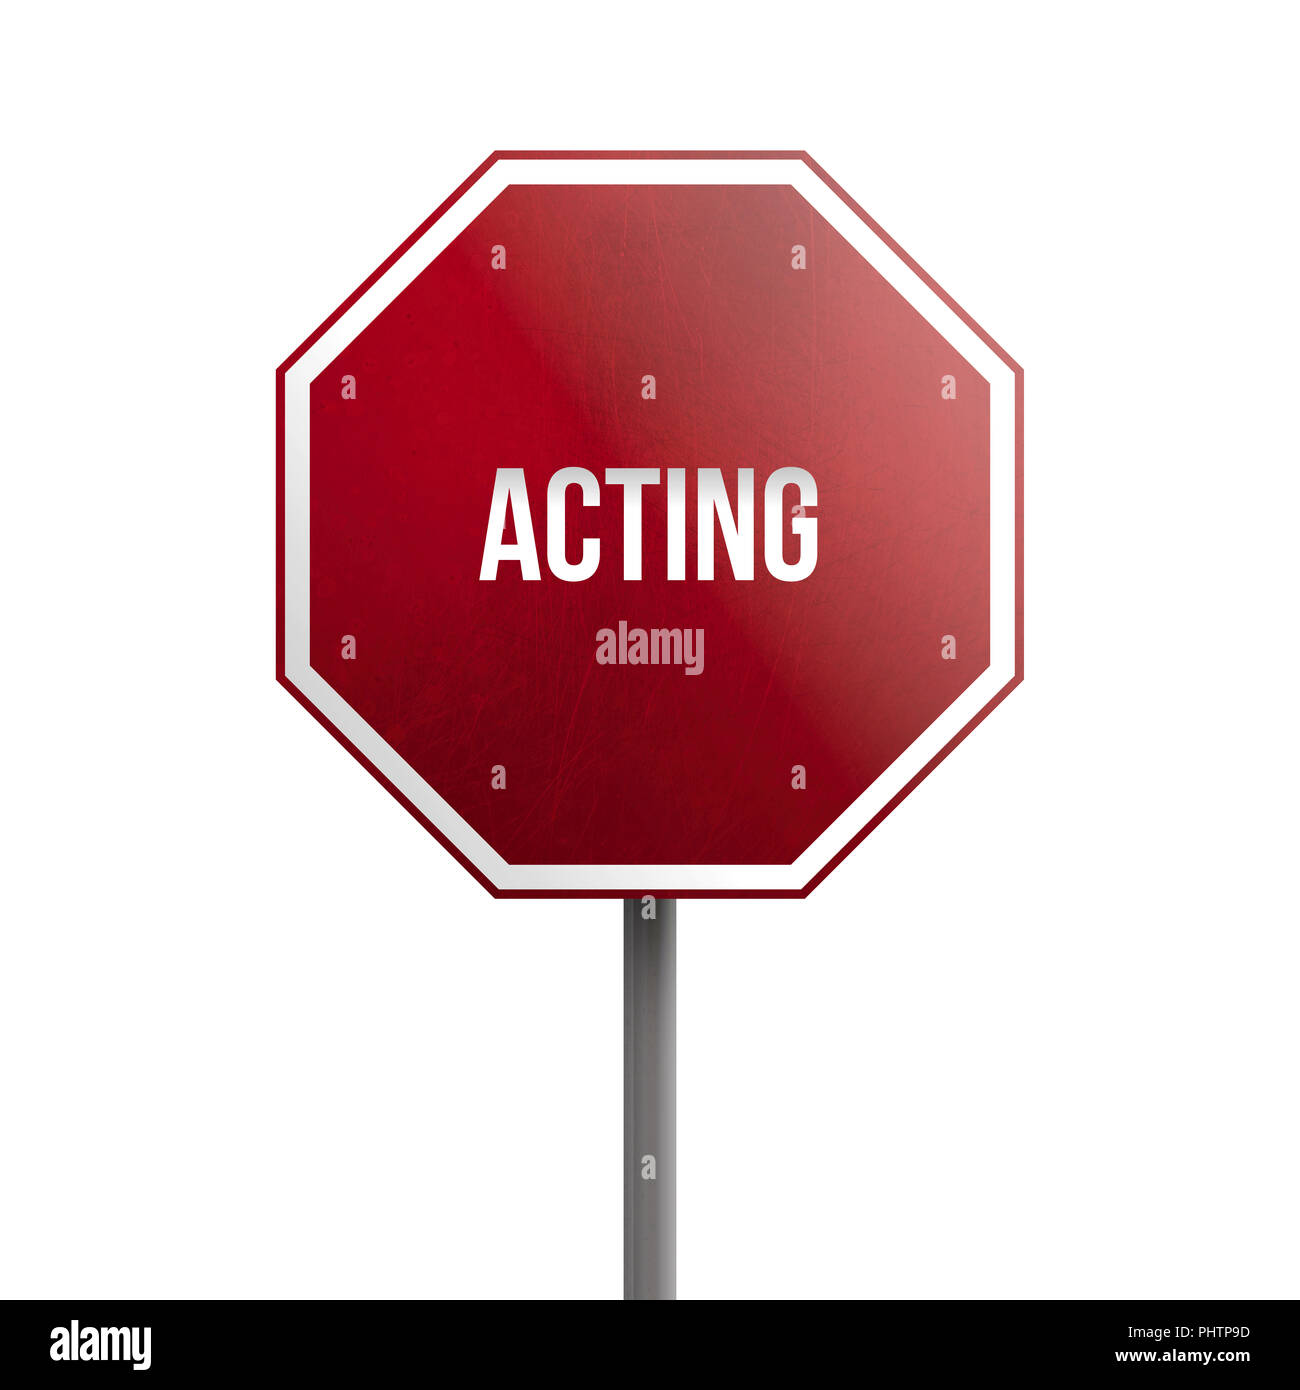 acting - red sign isolated on white background Stock Photo